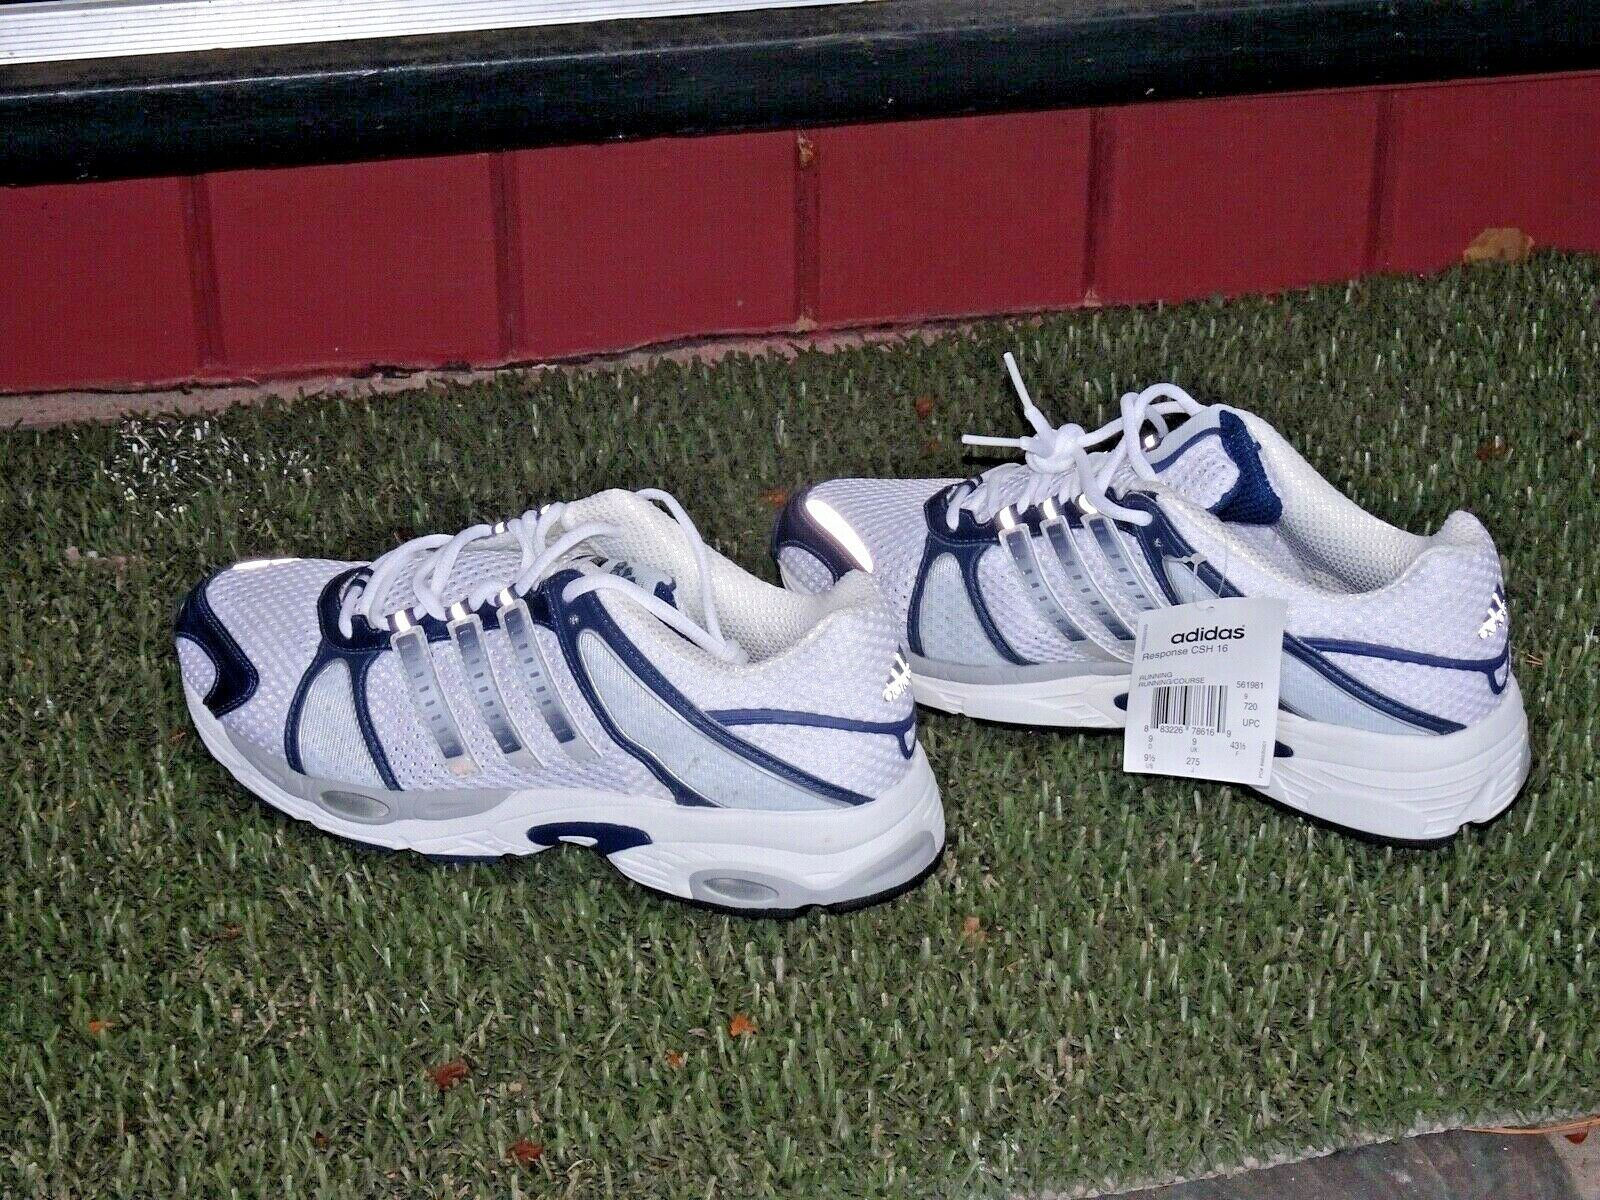 Adidas Performance Response Stab Stabilty Running Shoes White for sale  online   eBay